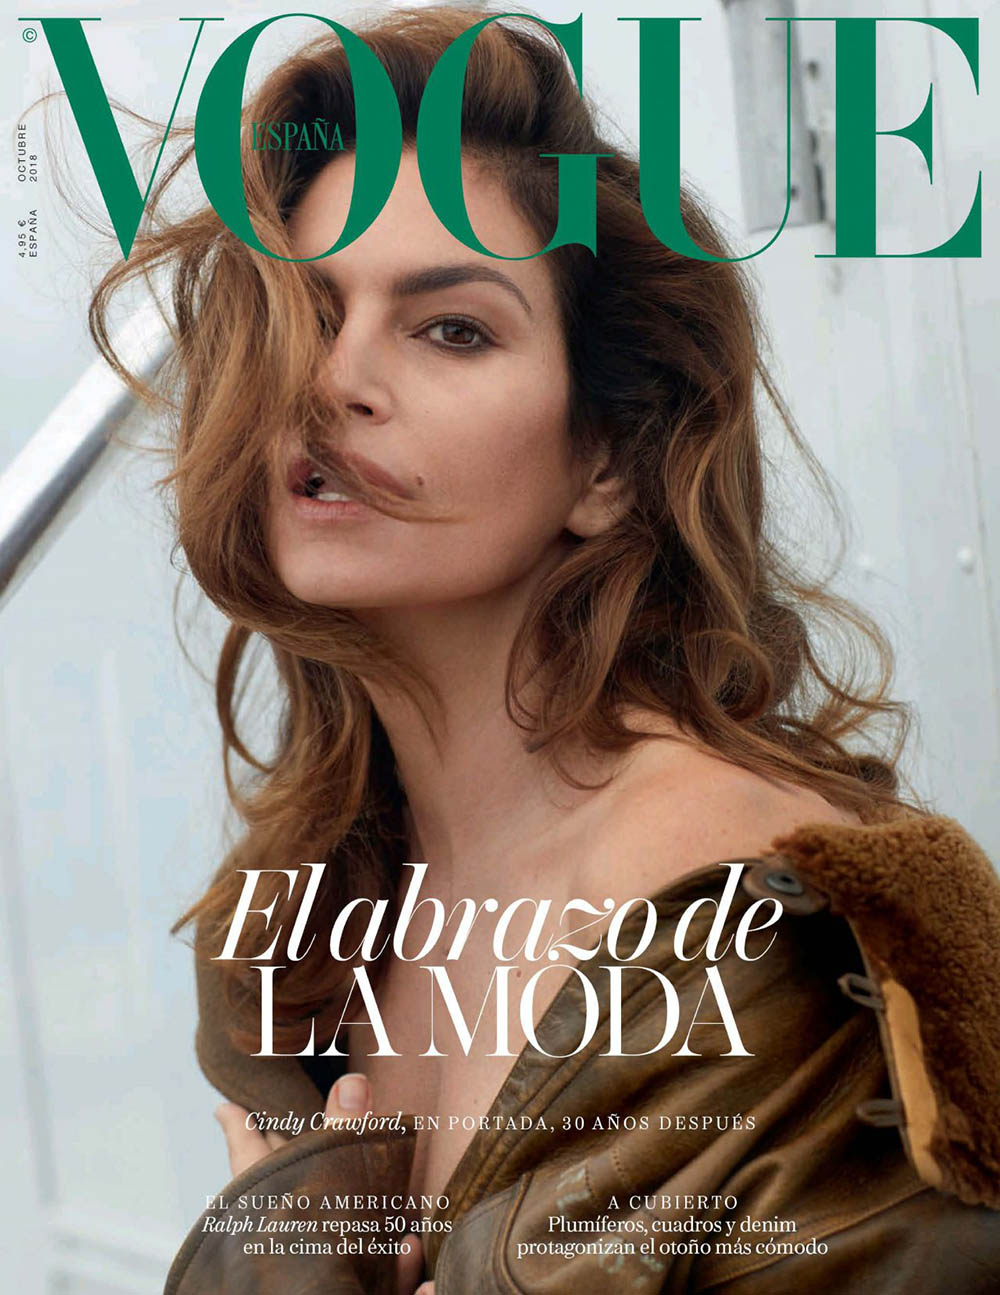 Cindy-Crawford-covers-Vogue-Spain-October-2018-by-Sebastian-Faena-1.jpg